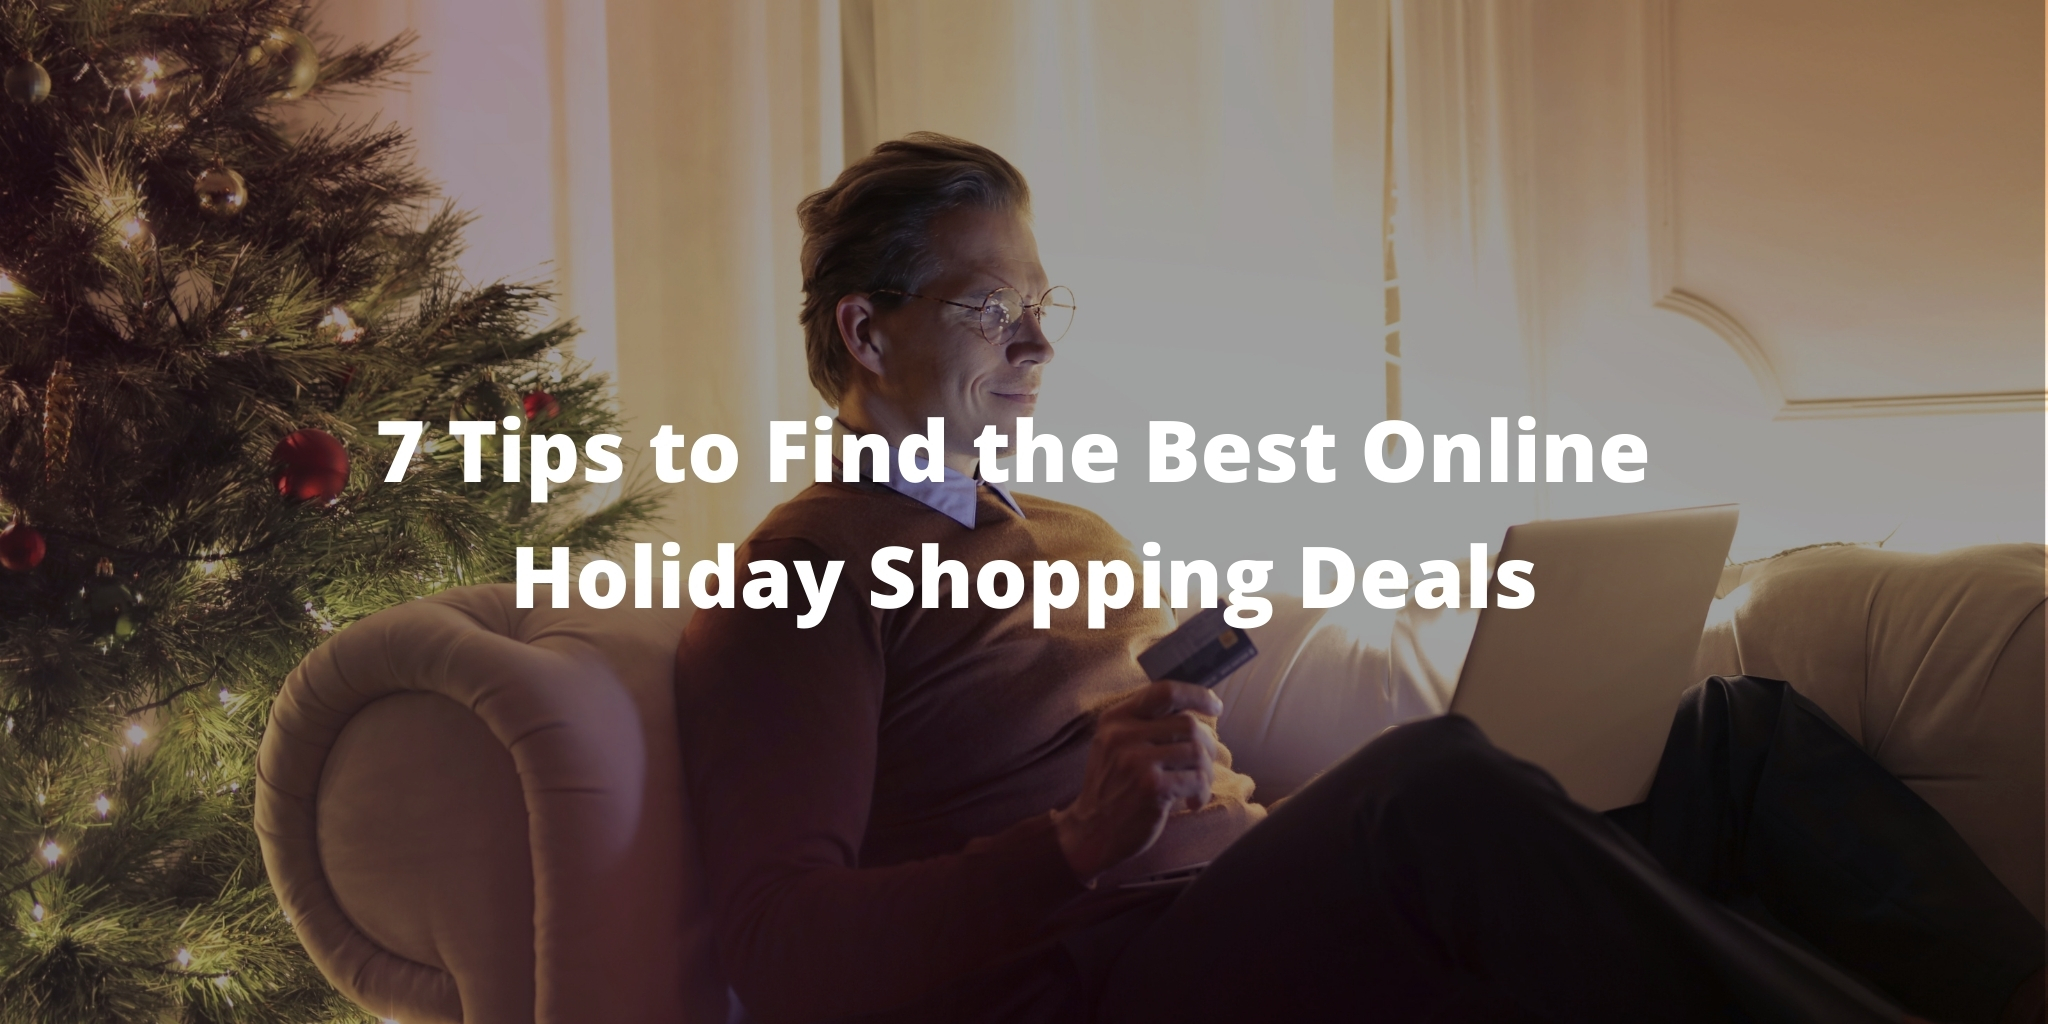 7 Tips to Find the Best Online Holiday Shopping Deals